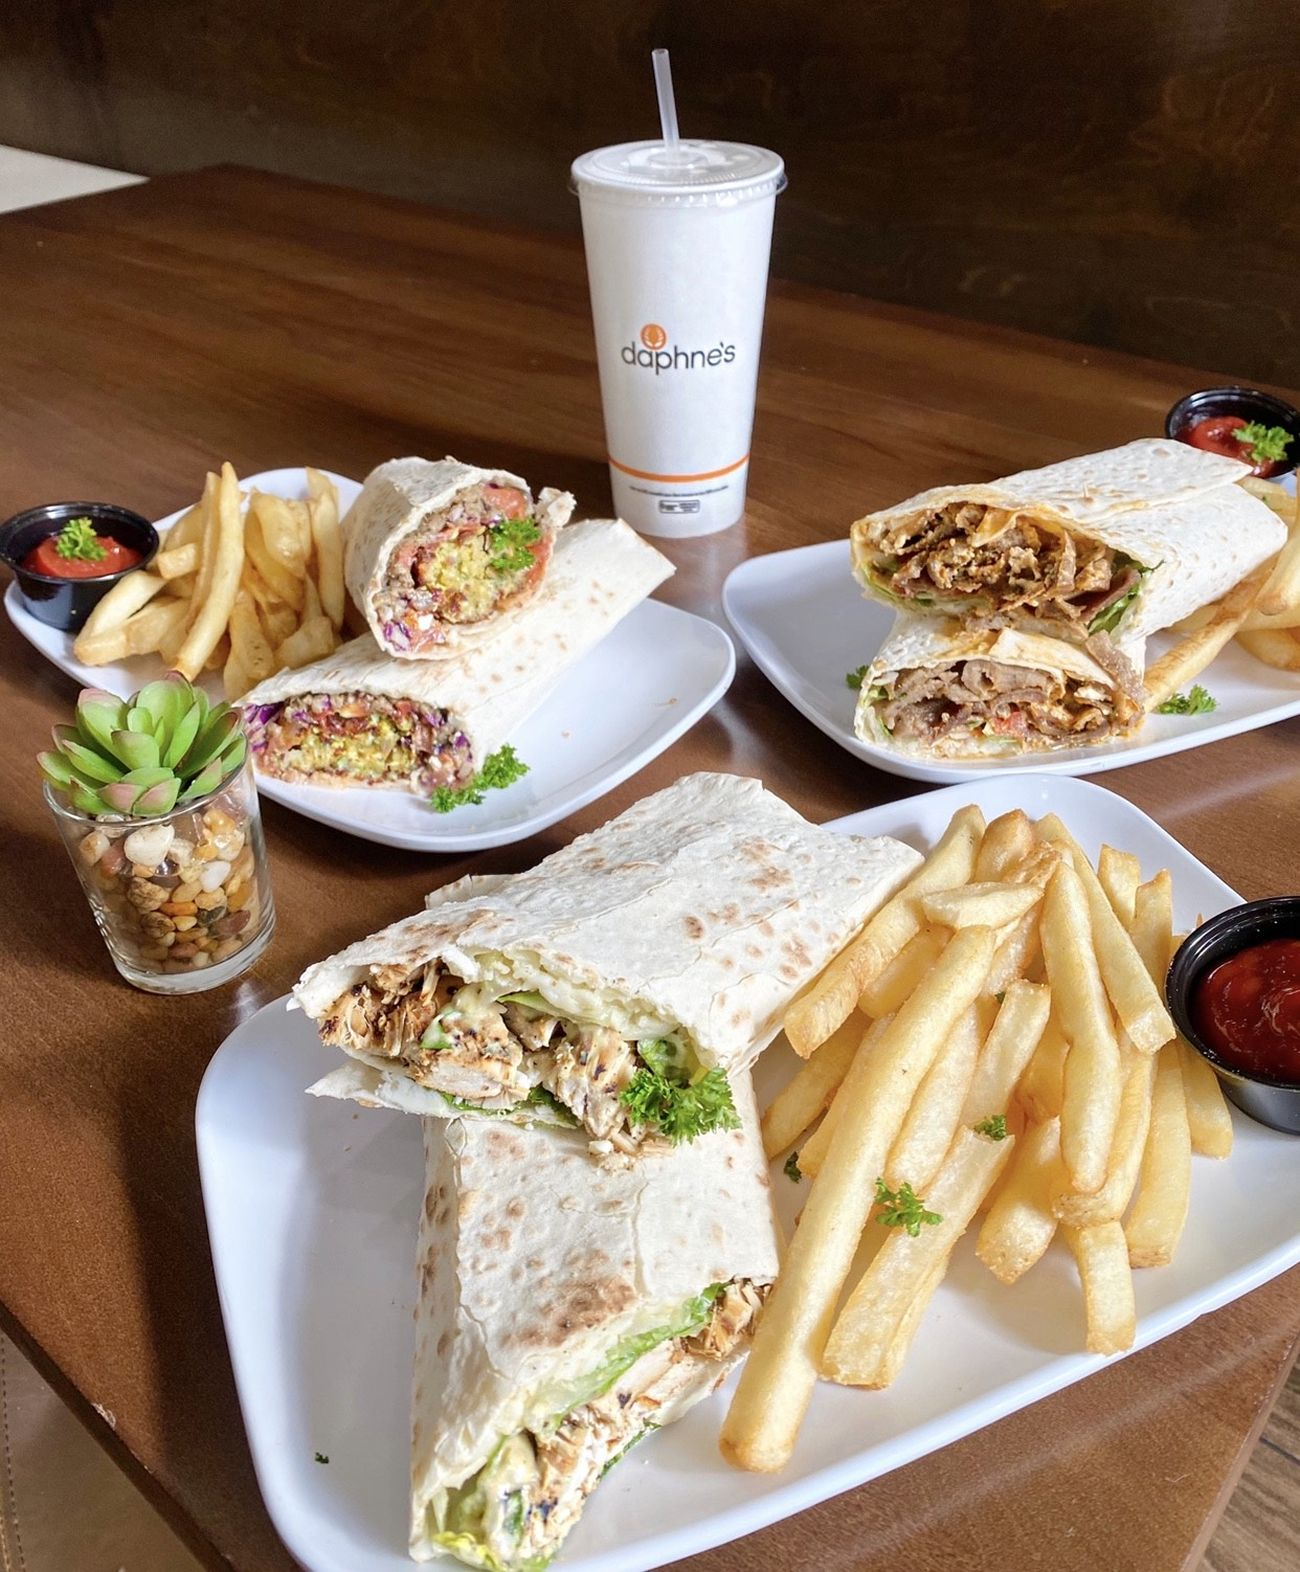 Daphne's has launched new and limited-time me lavash wraps at all locations. The wraps come in three varieties, each made with soft, unleavened lavash bread and handmade ingredients.